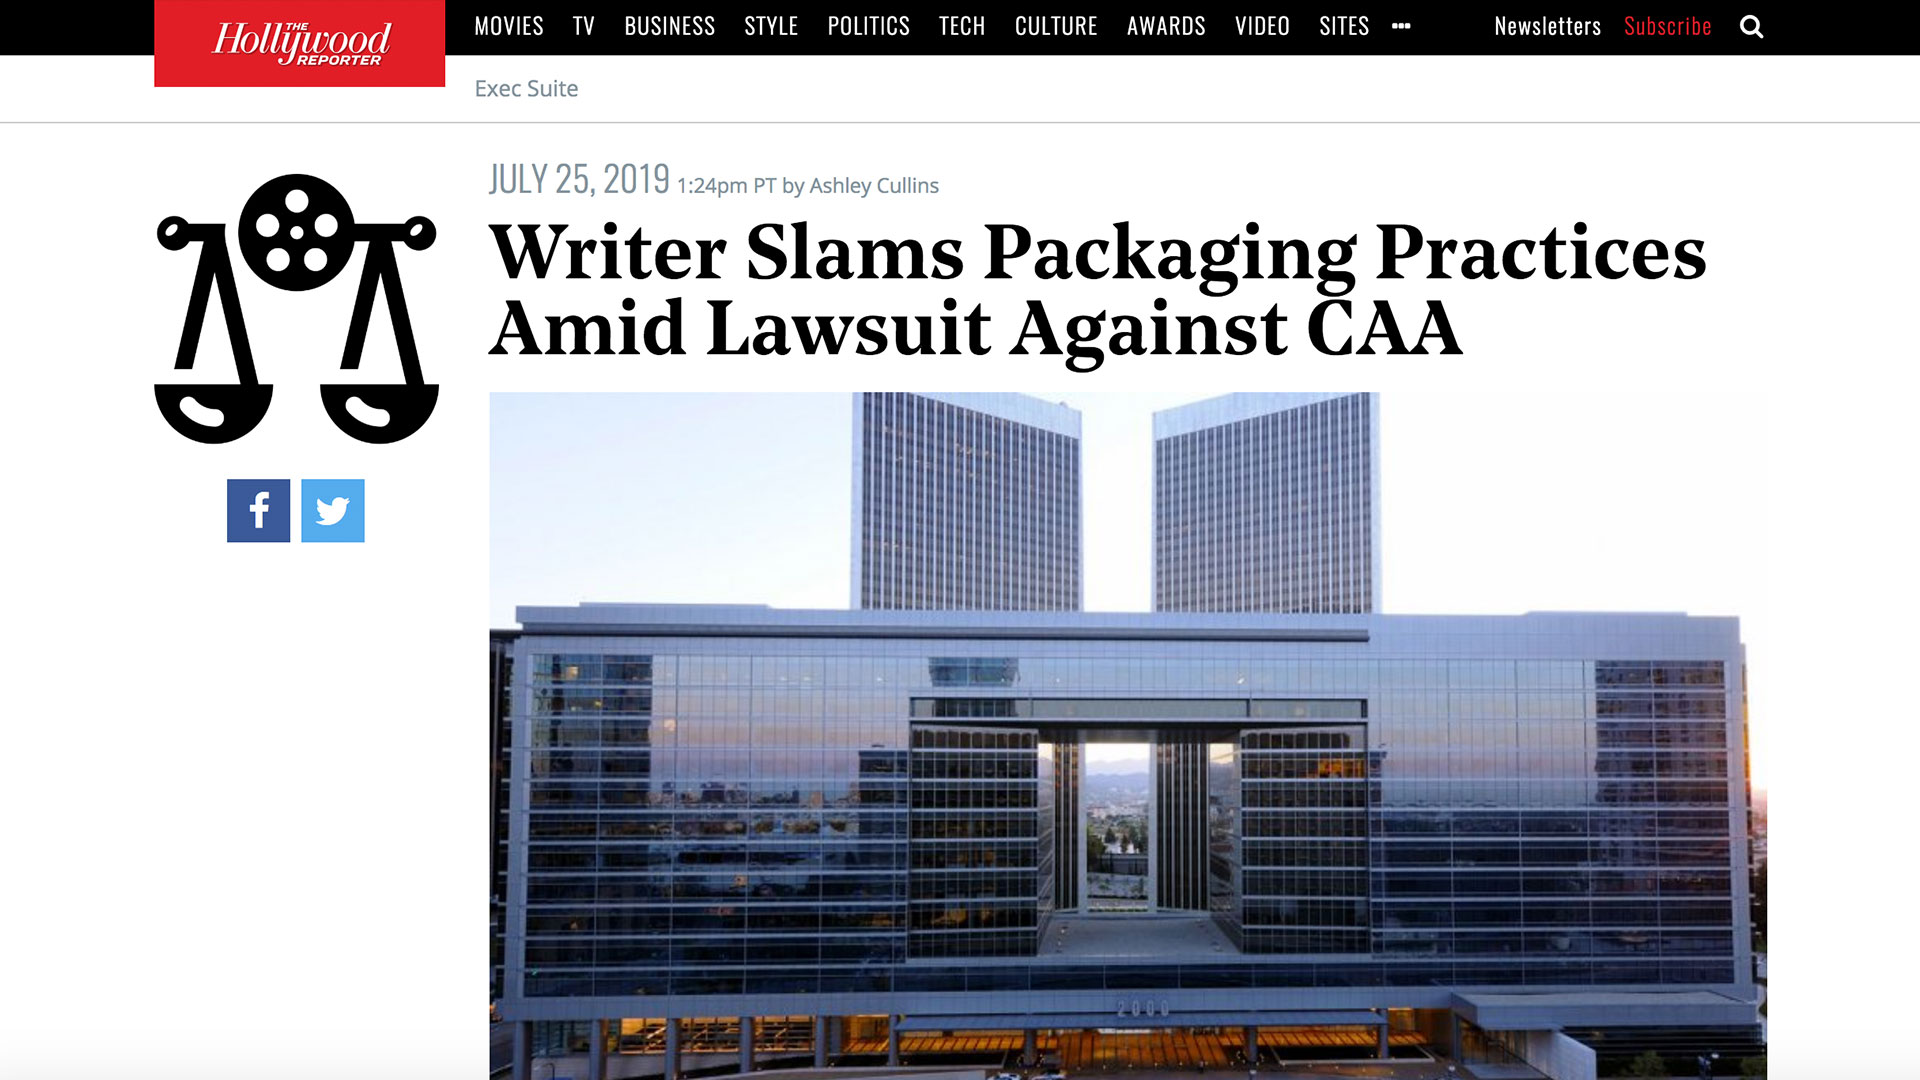 Fairness Rocks News Writer Slams Packaging Practices Amid Lawsuit Against CAA